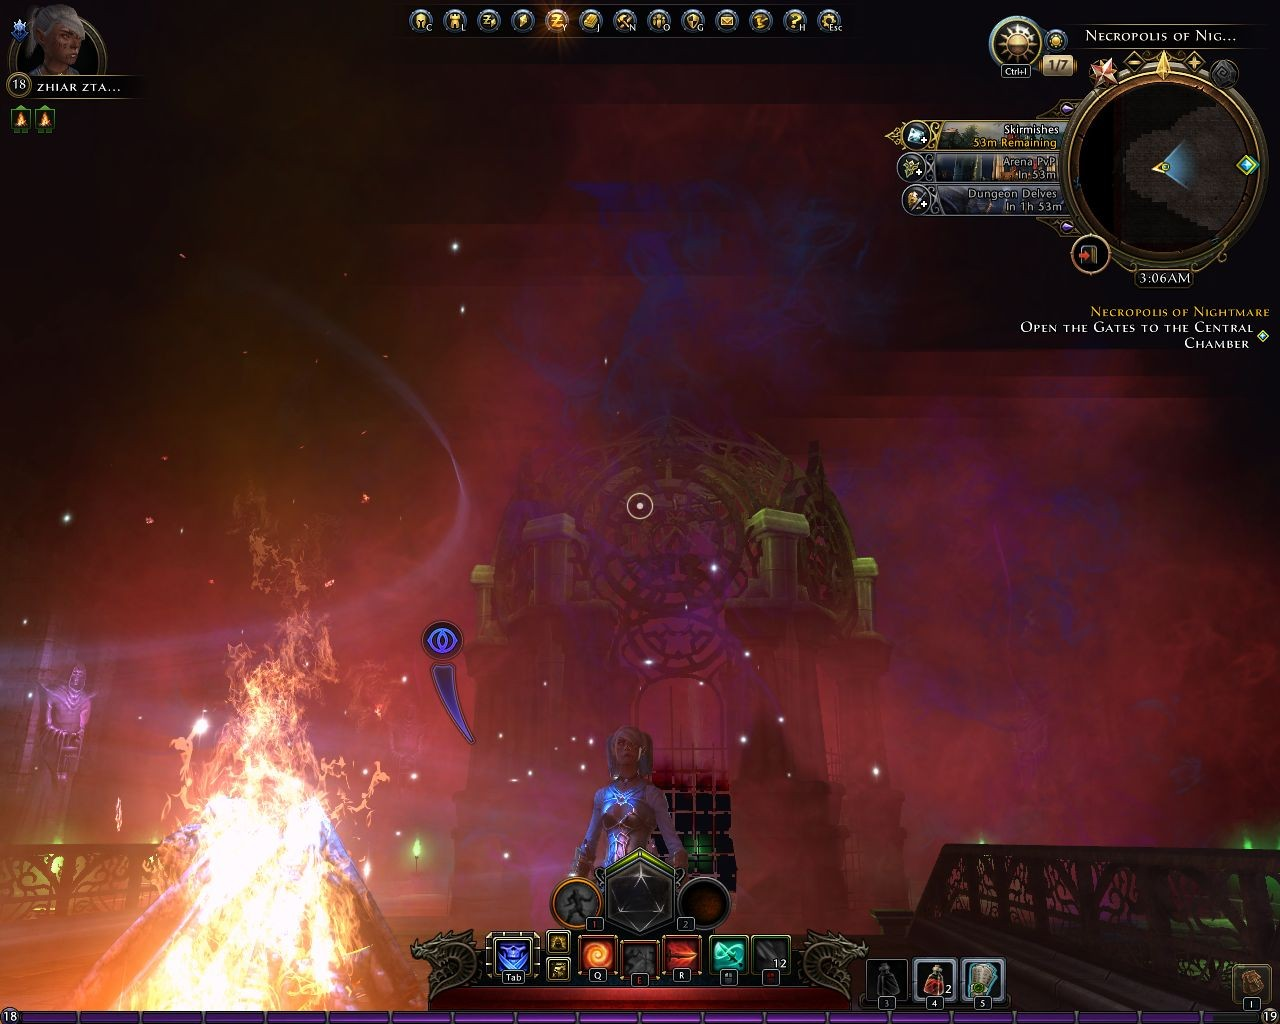 Neverwinter - from the ending of a foundry mission in neverwinter